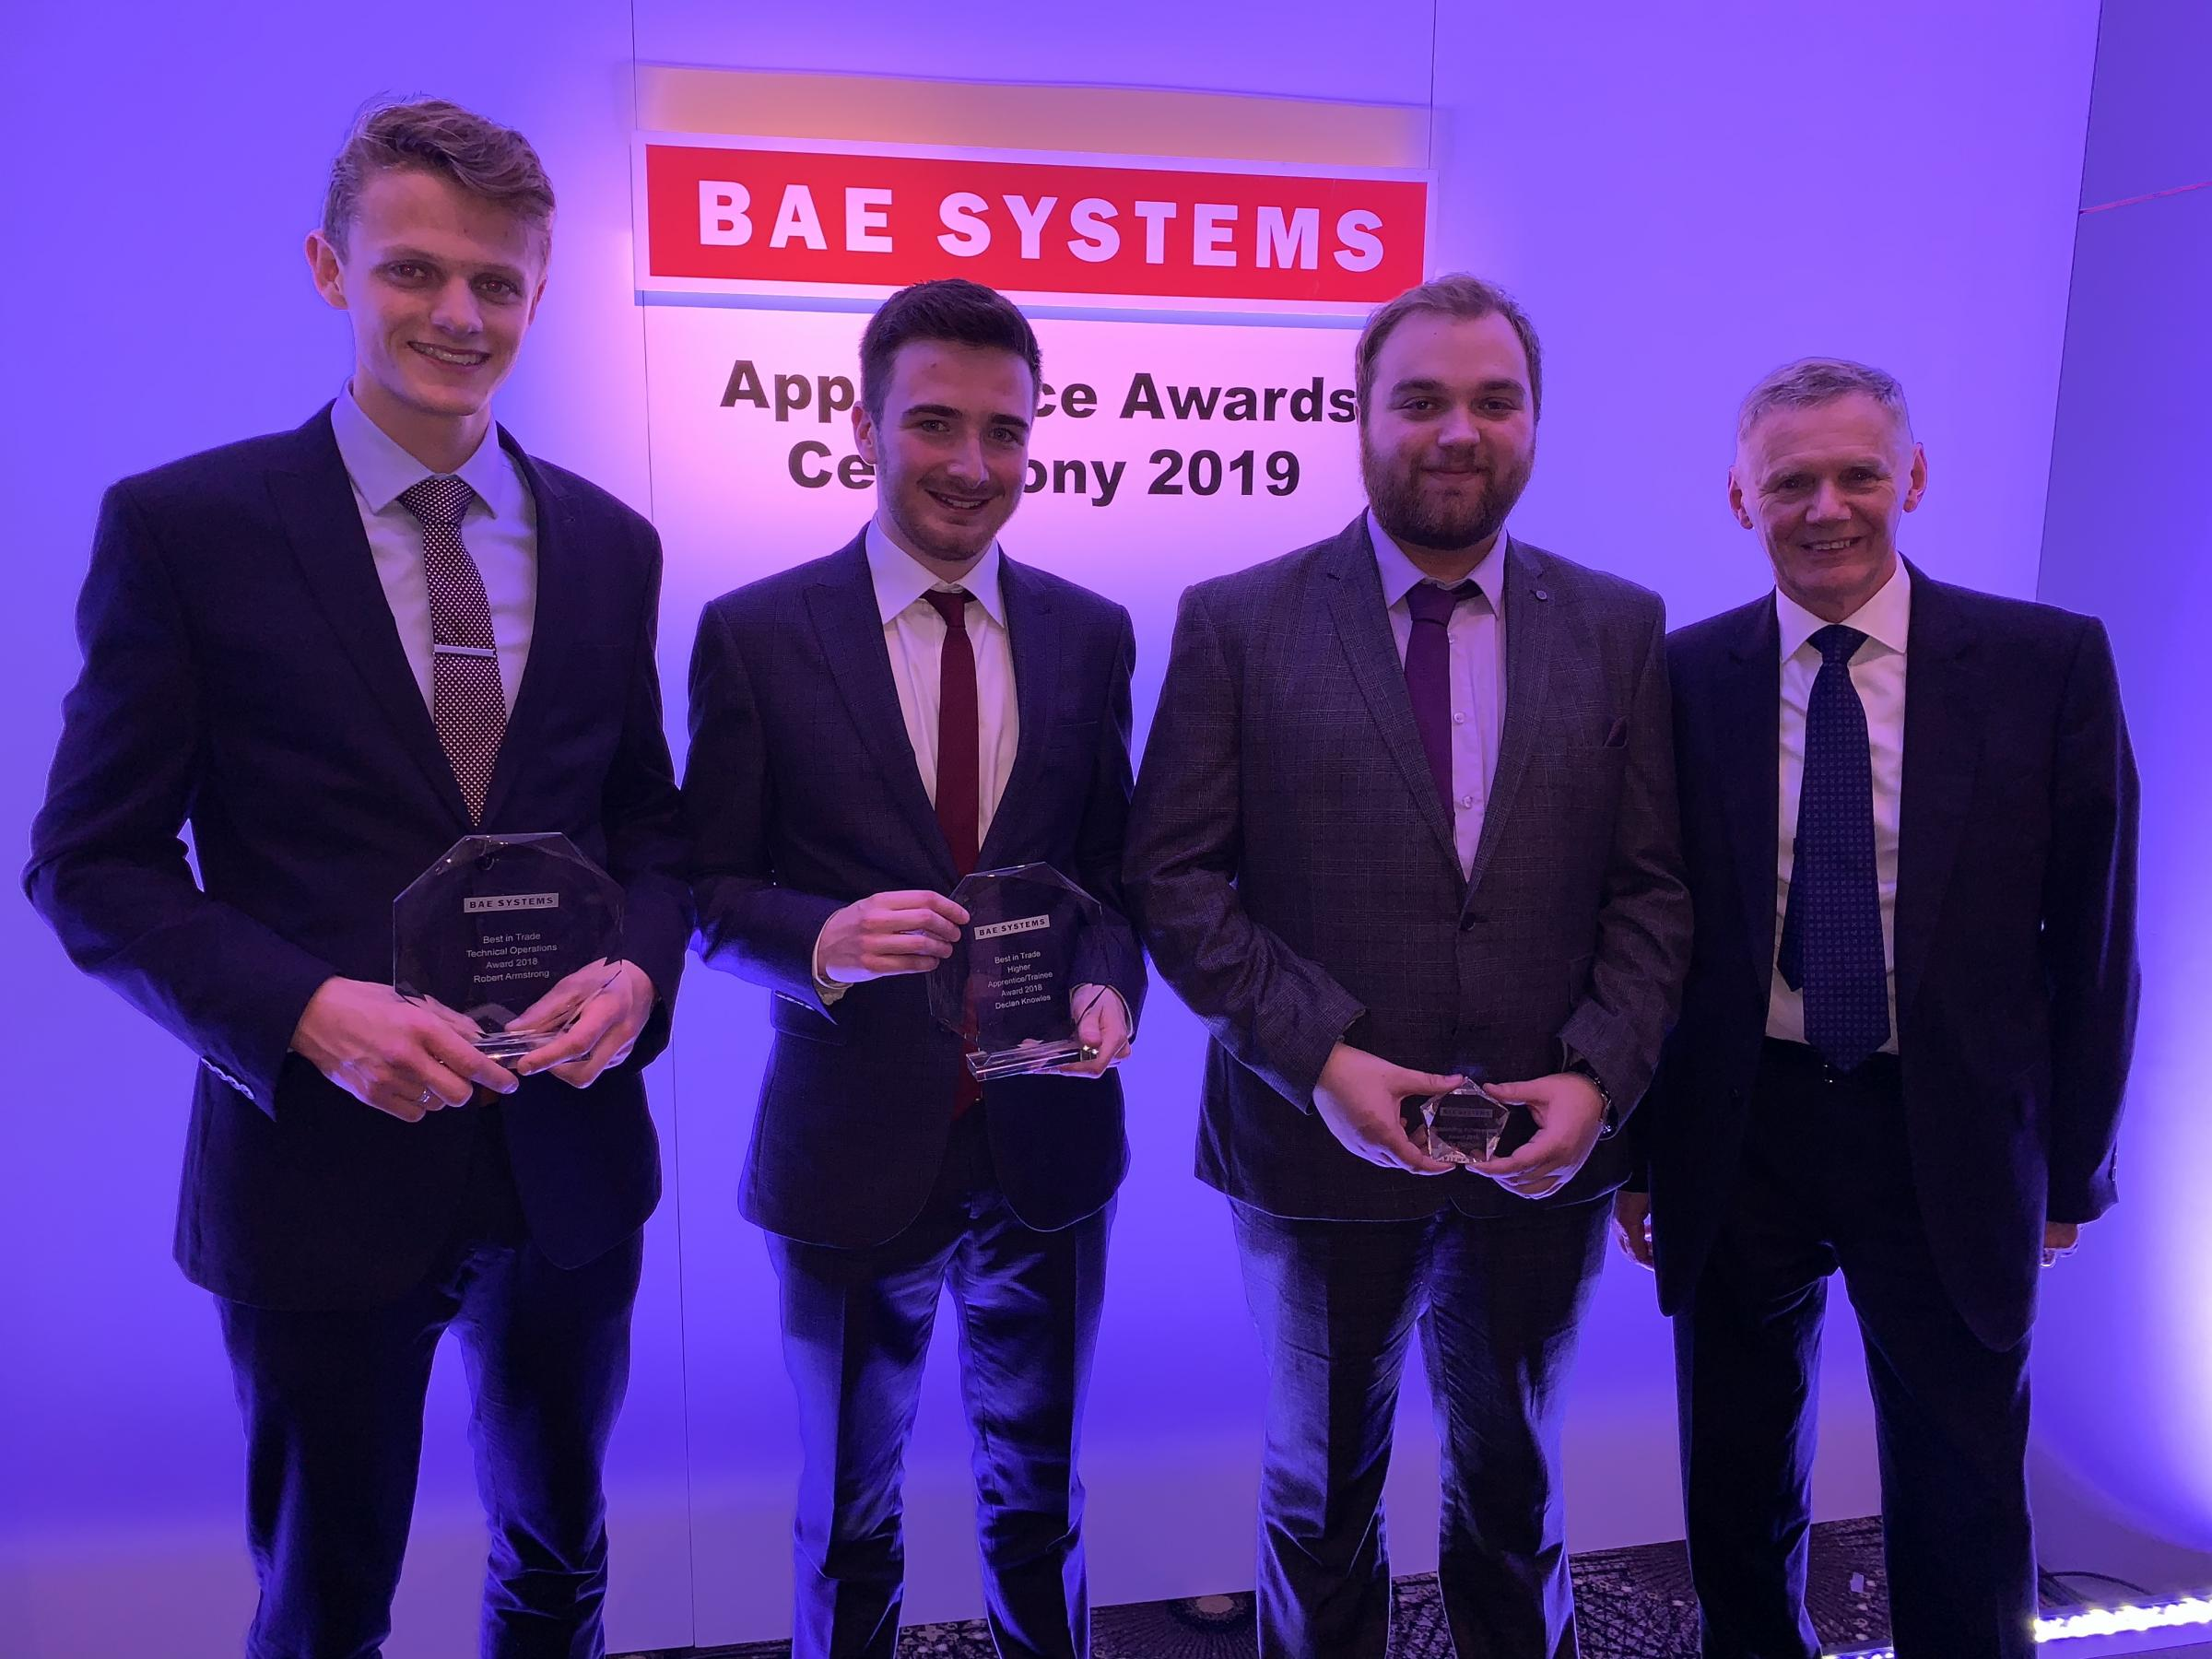 L-R: BAE apprentices Robert Armstrong, Declan Knowles and Jake Dewhurst with BAE Submarines managing director Cliff Robson.